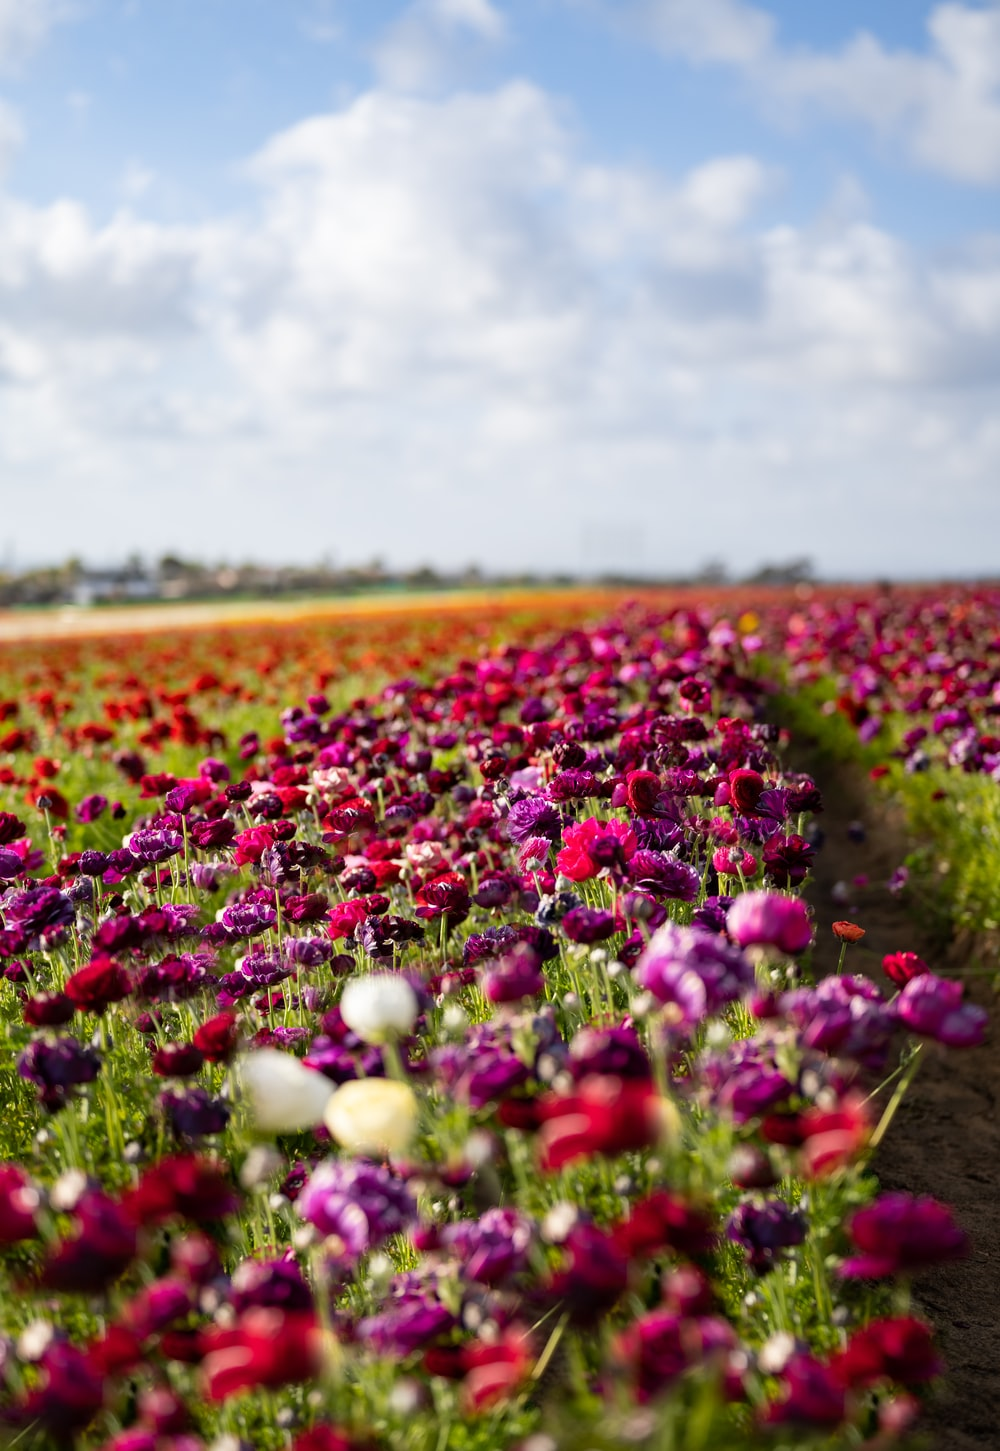 purple and white flower field during daytime